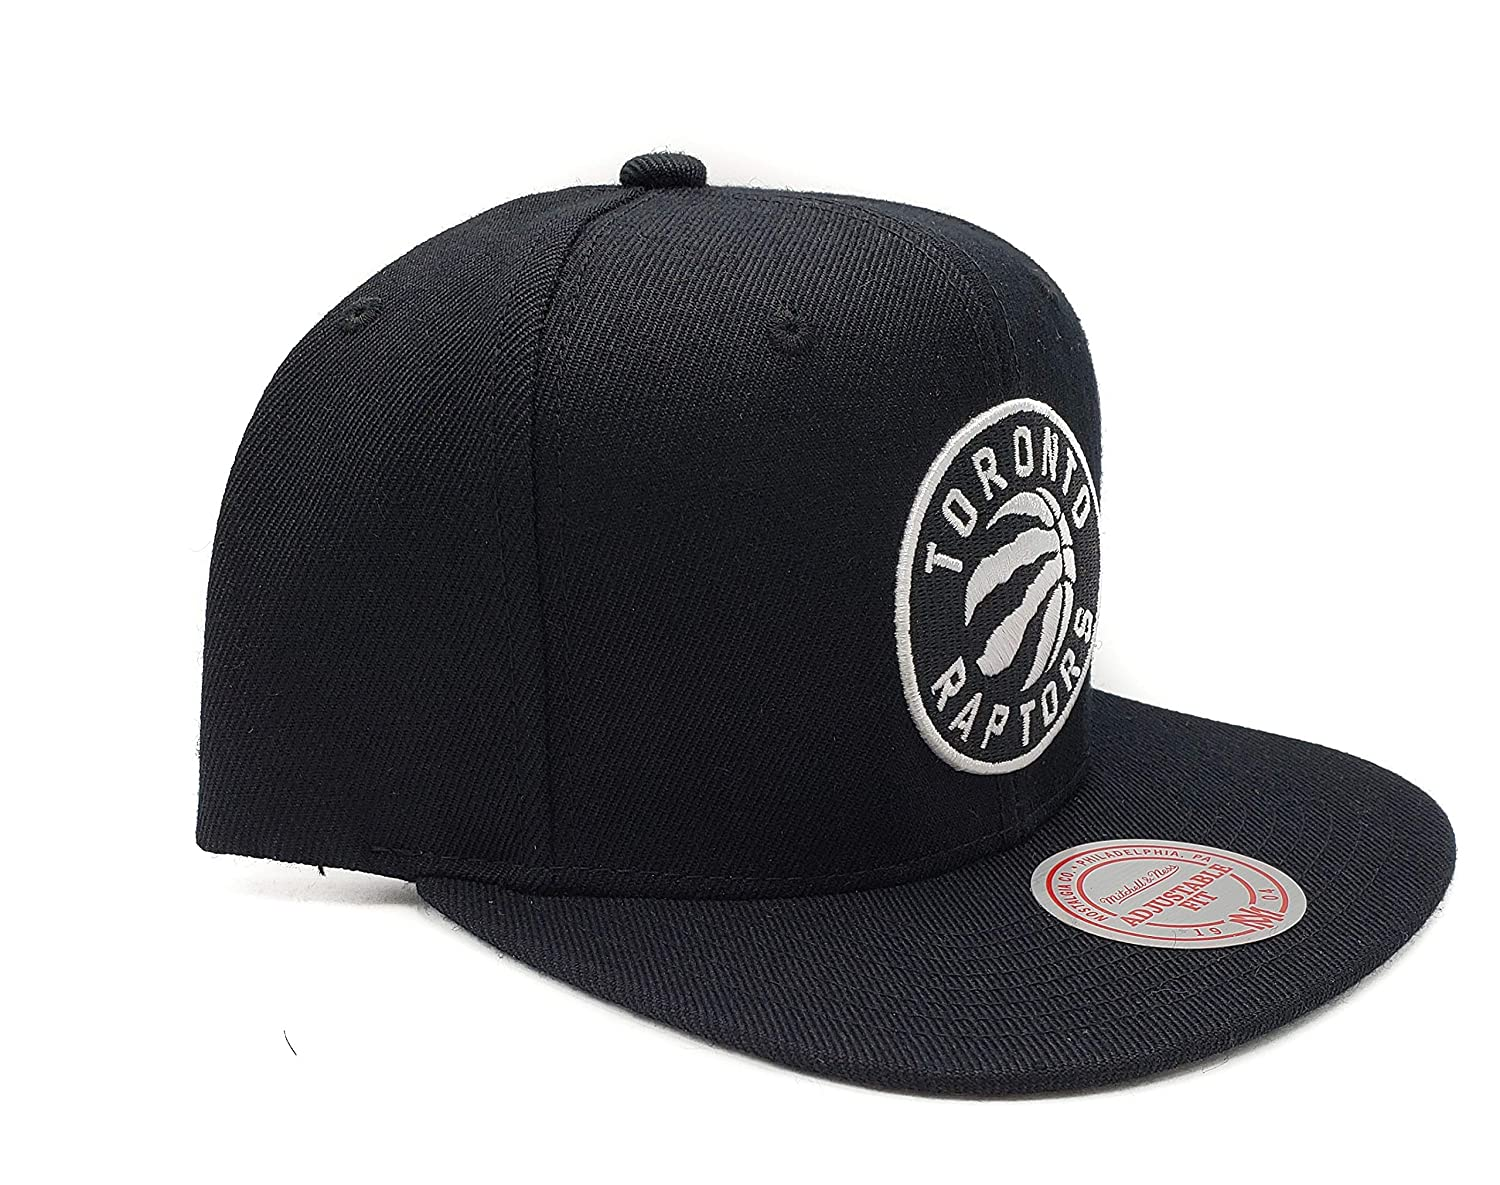 the latest b0559 69b81 Amazon.com   Mitchell   Ness Toronto Raptors Current Solid Wool Black Logo  Adjustable Snapback Hat   Sports   Outdoors